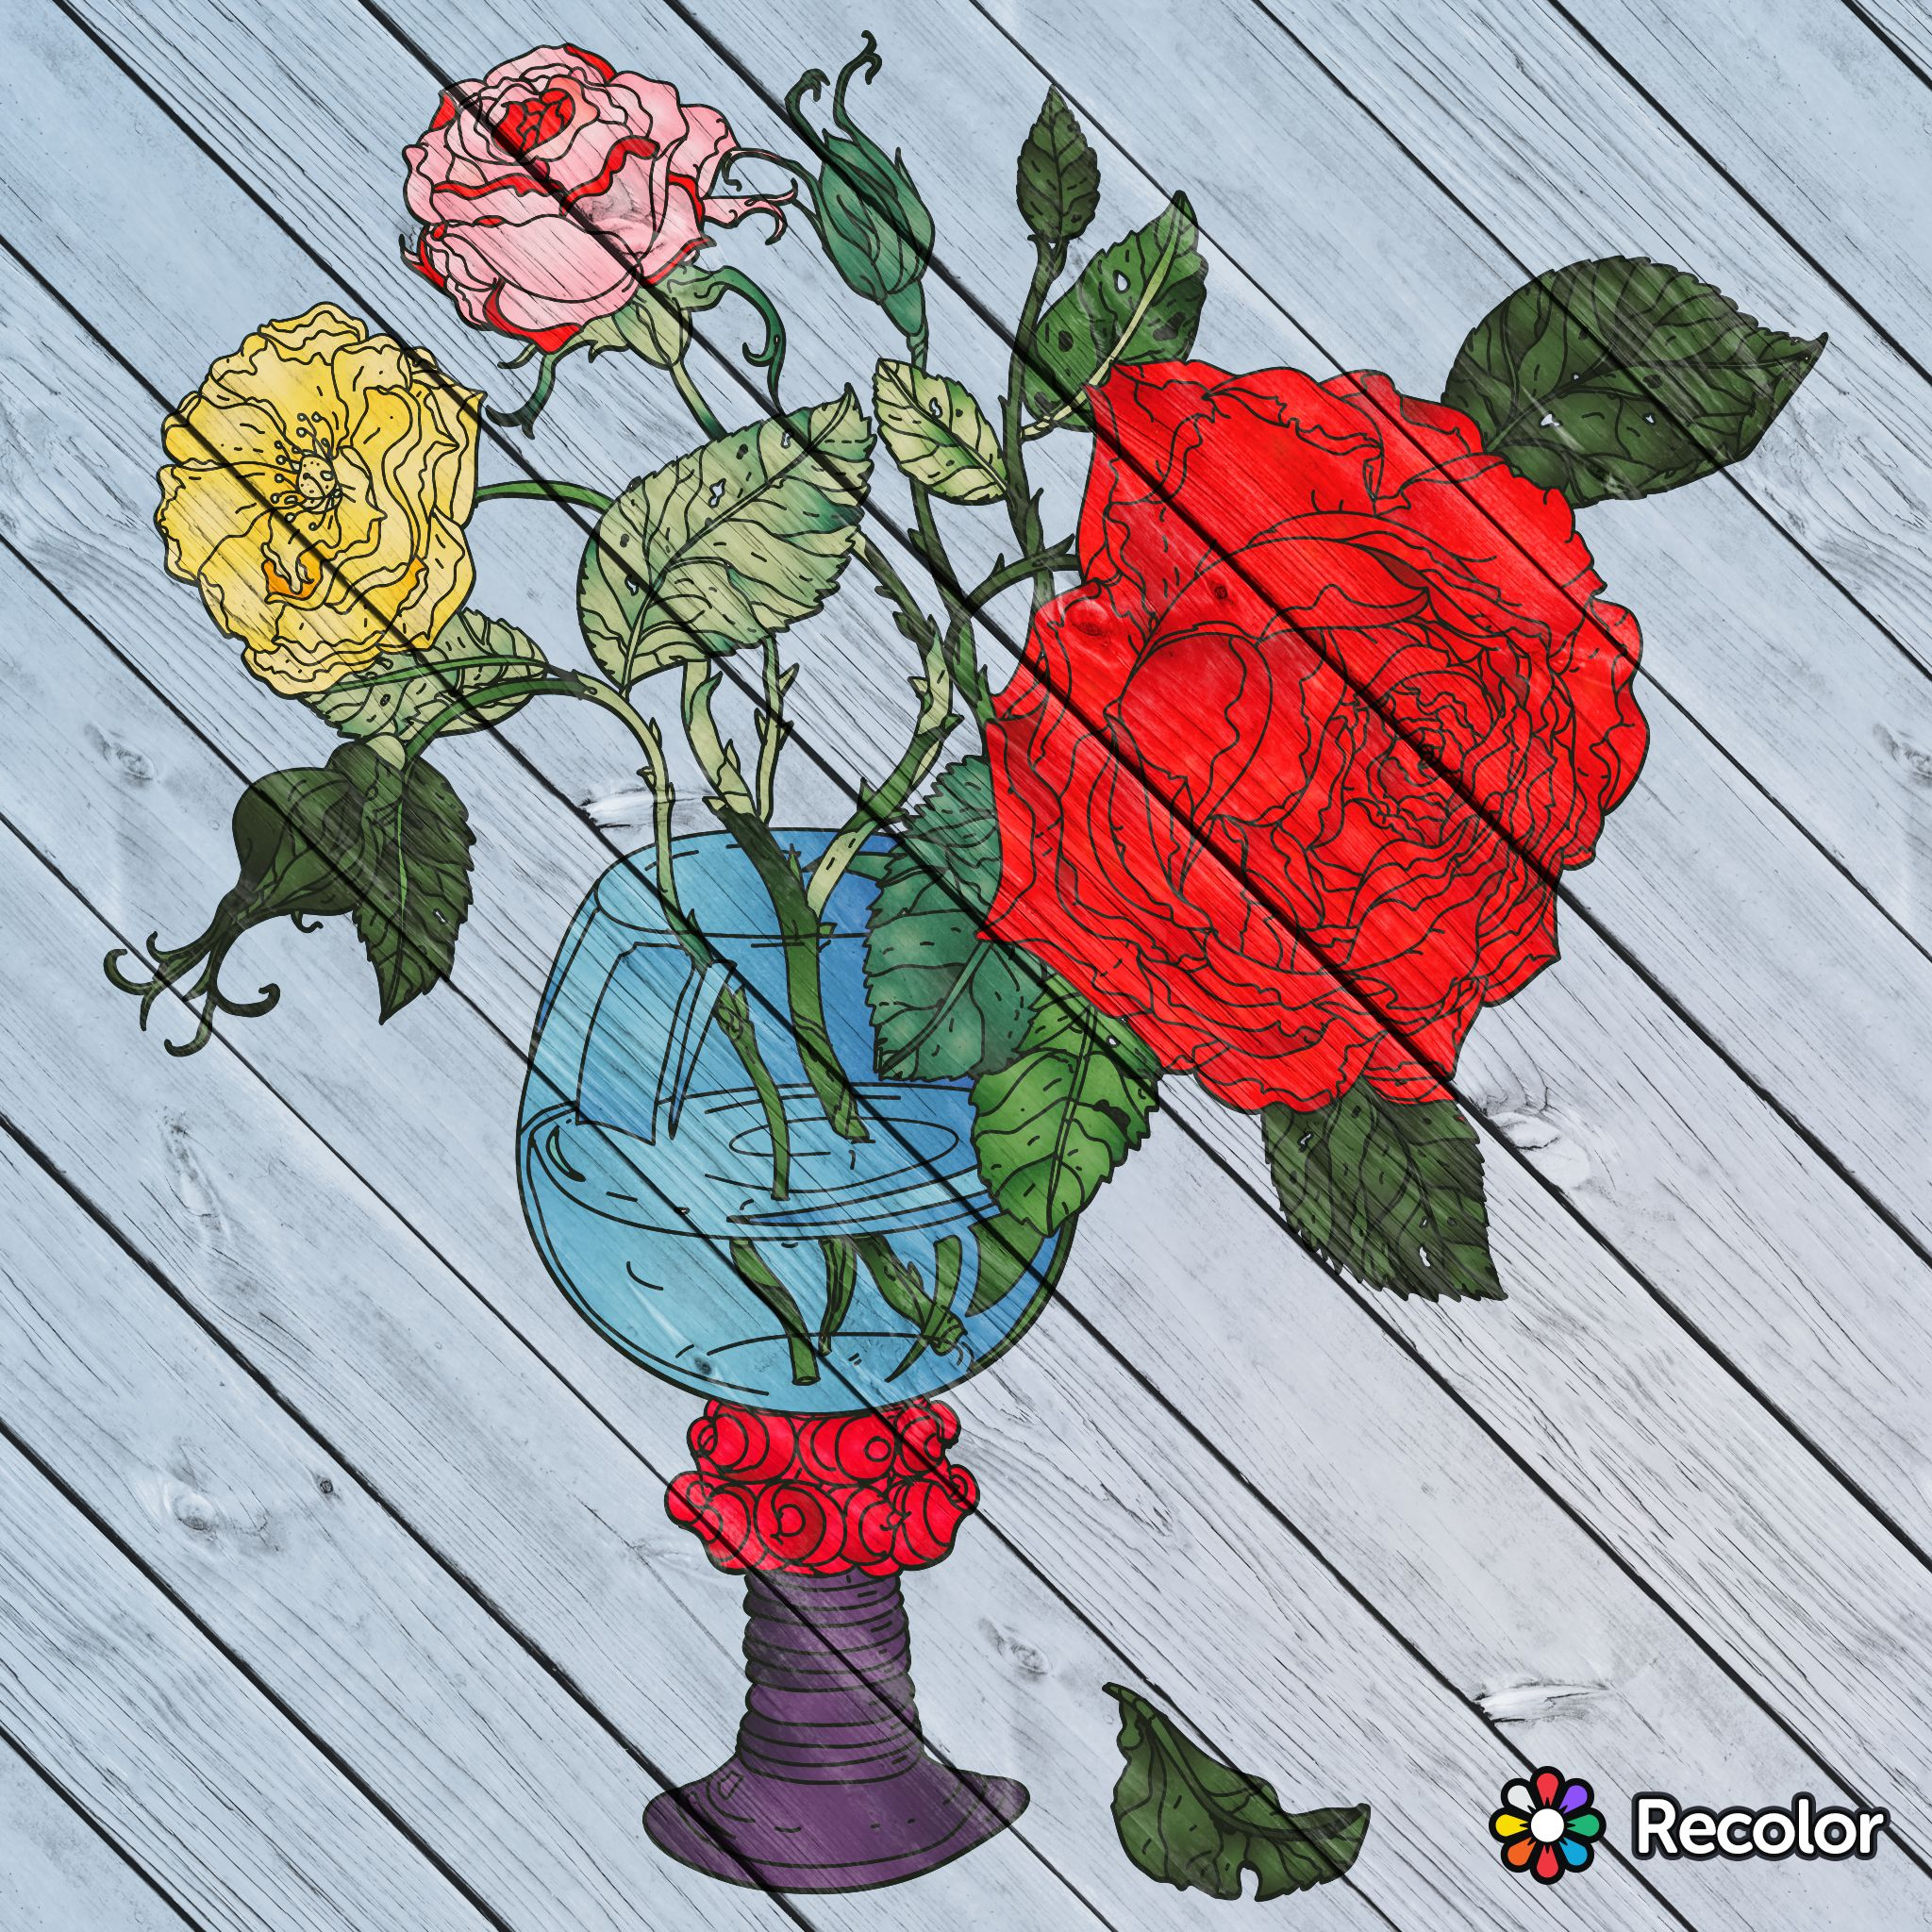 Pin by Karen Hutchens on Coloring pages | Pinterest